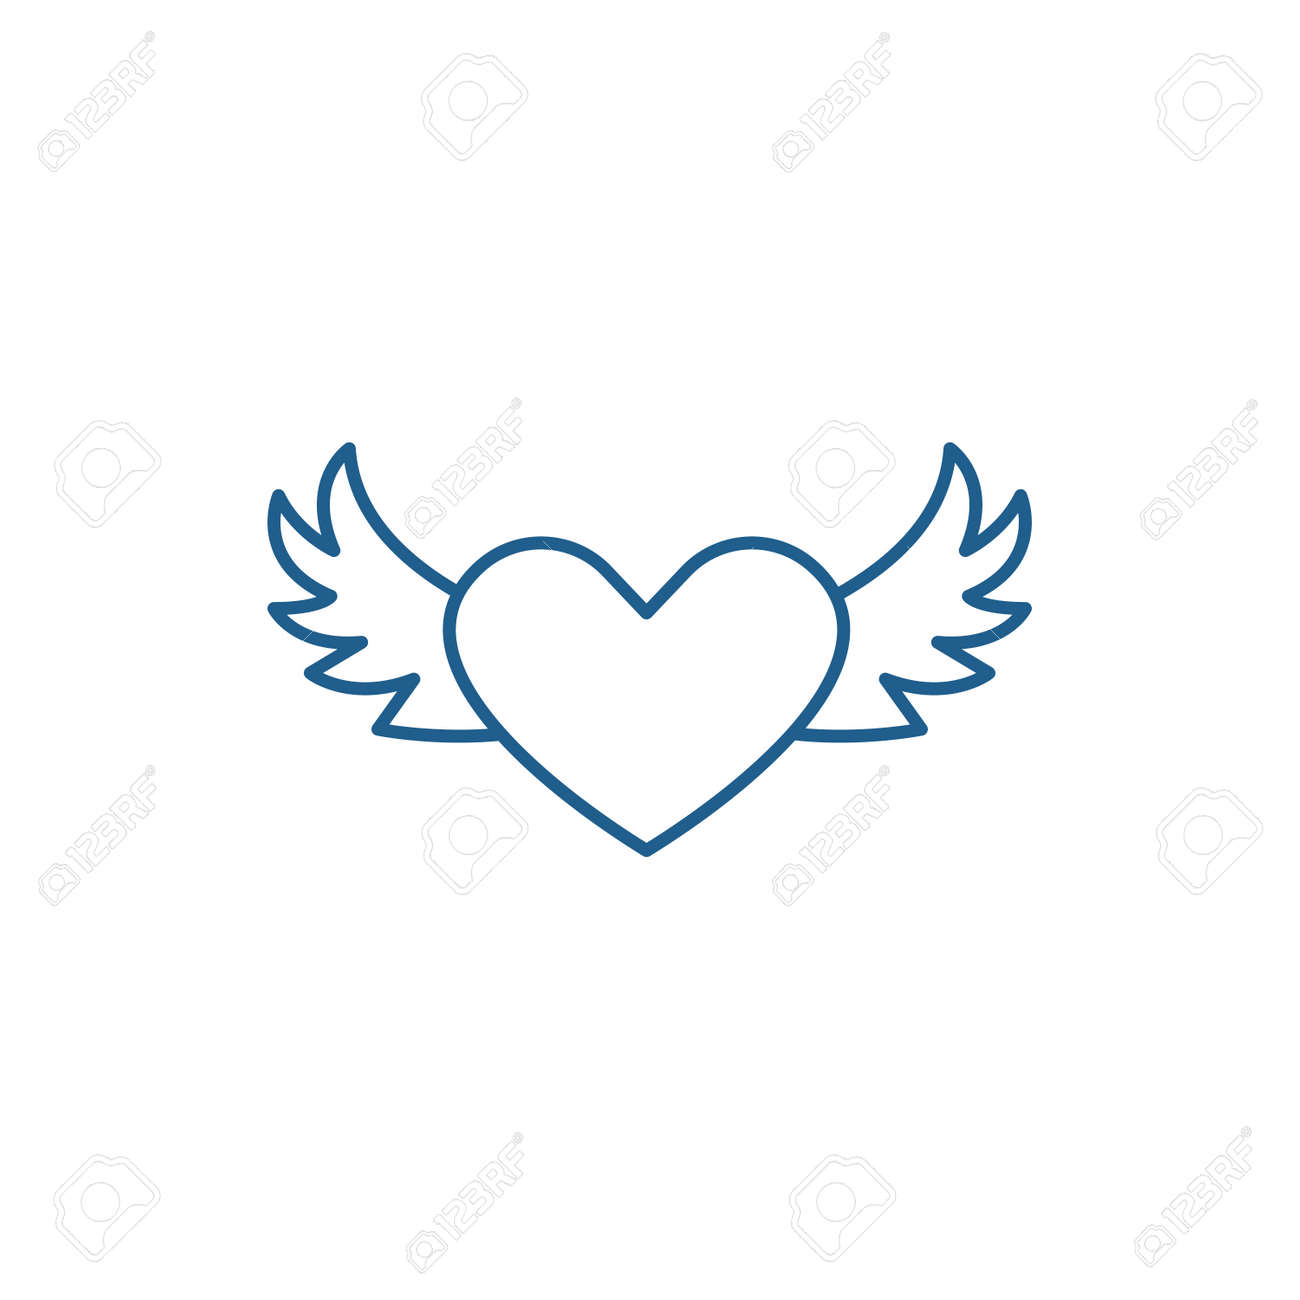 Heart With Wings Line Concept Icon Heart With Wings Flat Vector Royalty Free Cliparts Vectors And Stock Illustration Image 119908144